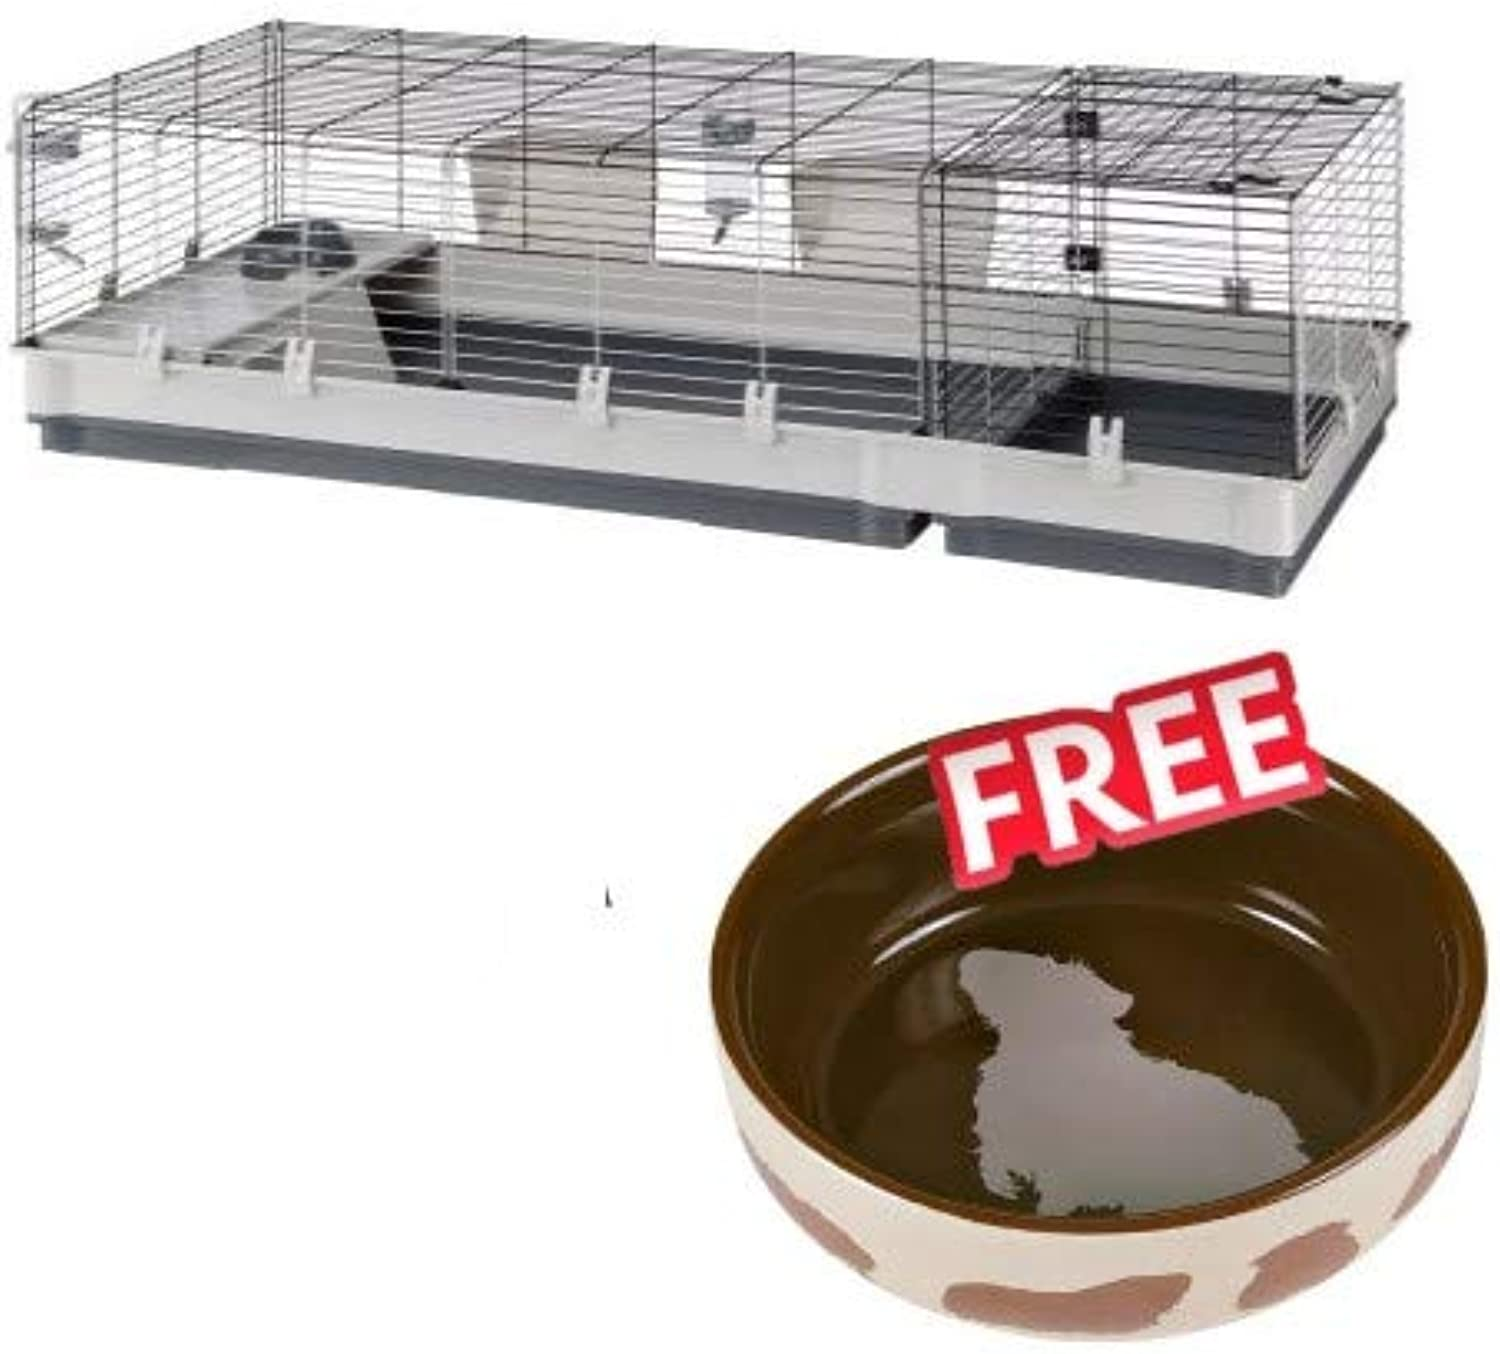 Plaza 160 Small Pet Large Cage with Accessories and Nesting Area, Three Large Doors 2.45 cm Grill Walls Grey 162 x 60 x 50cm for Rabbits & Guinea Pigs FREE Ceramic Food Bowl